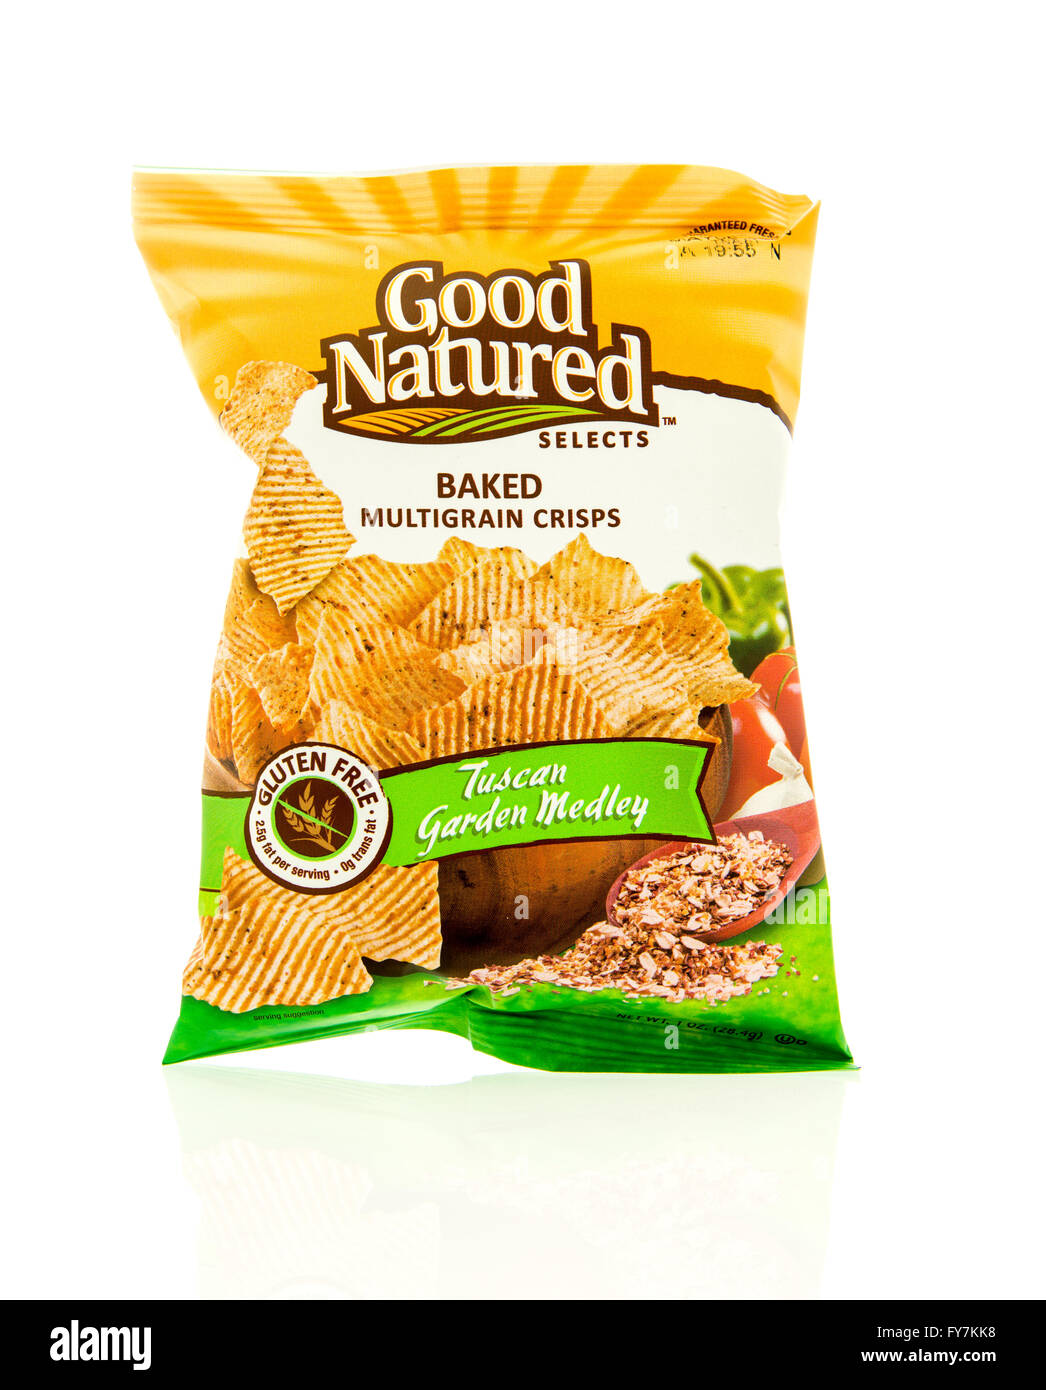 Winneconne, WI - 17 Feb 2016: Bag of Good Natured baked chips in tuscan garden medley flavor. - Stock Image